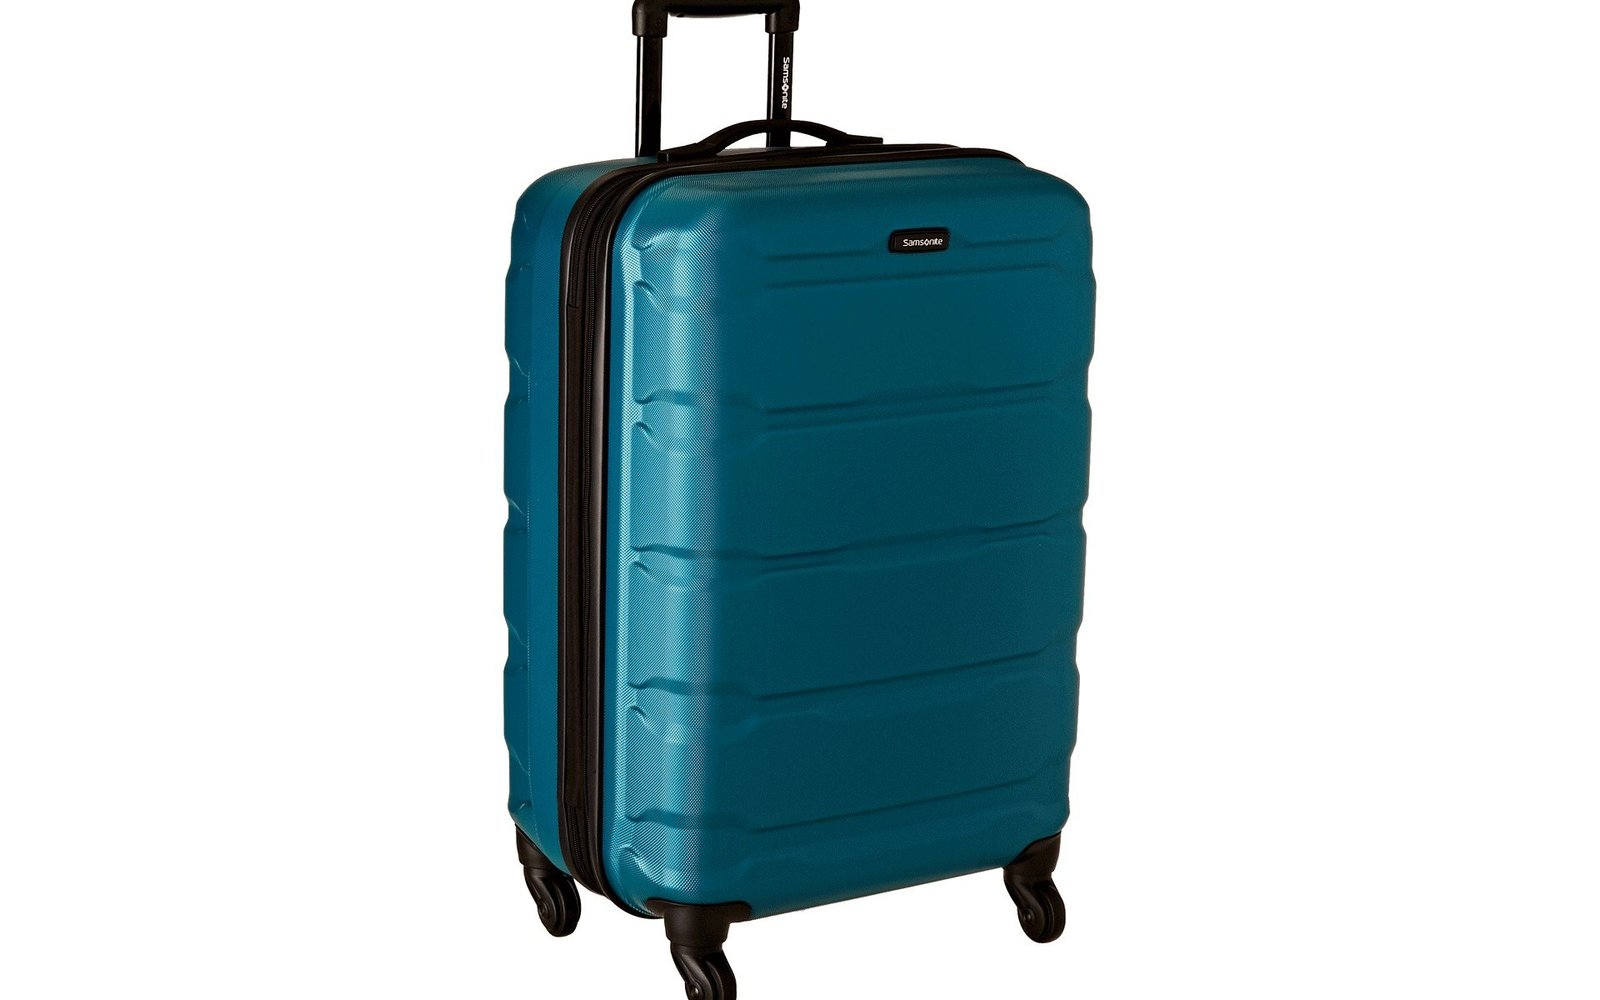 Samsonite Omni Spinner Suitcase